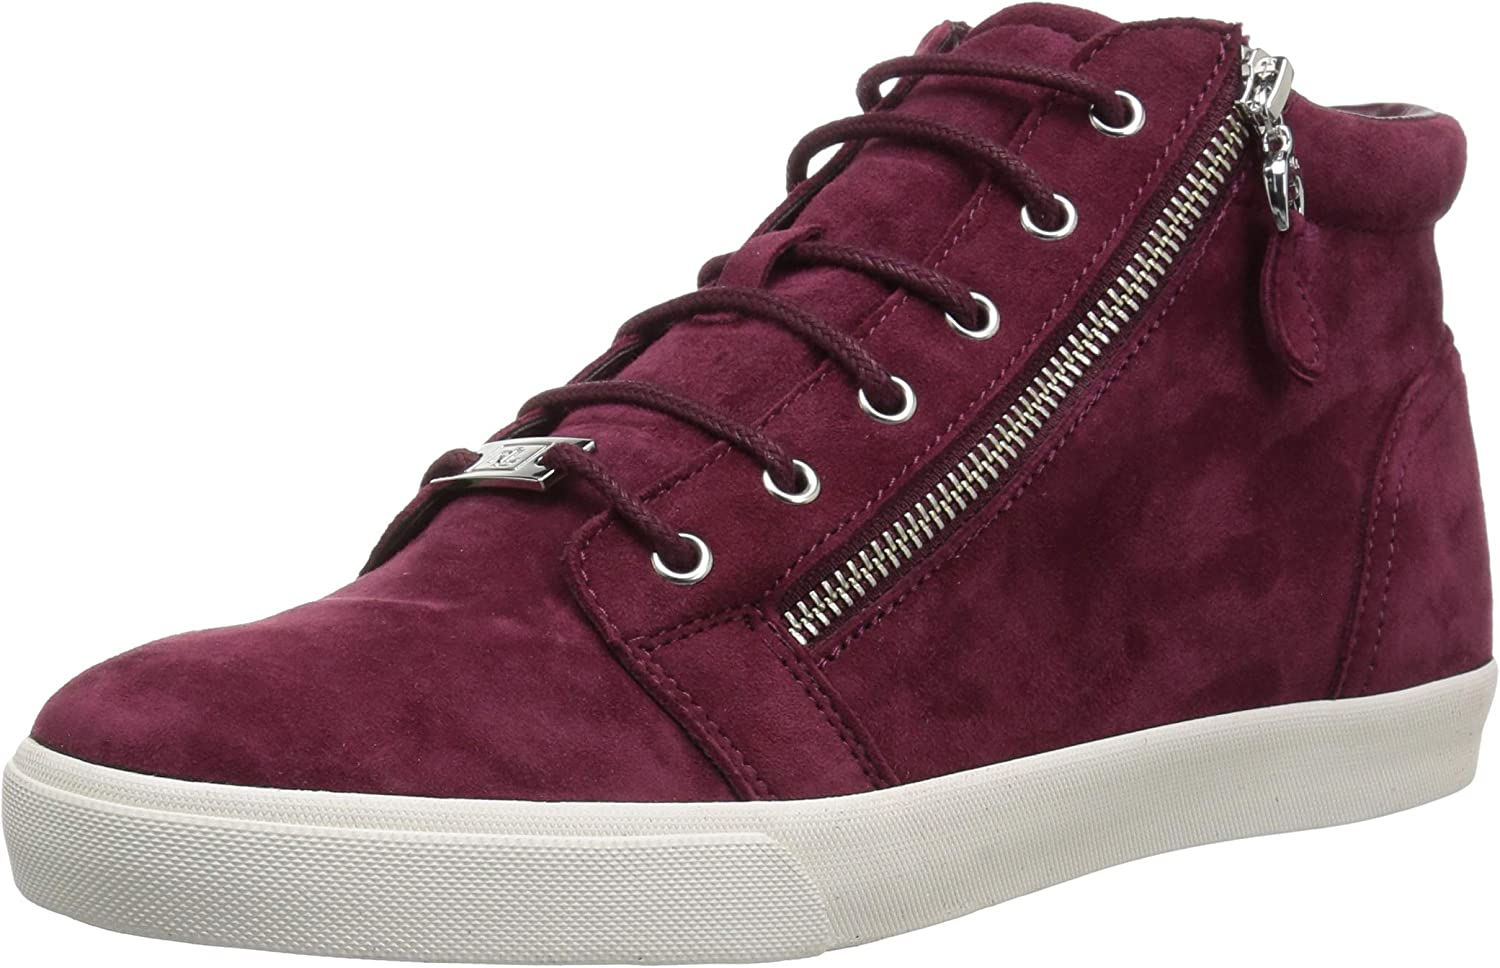 Lauren by Ralph Lauren Womens Reace Sneaker